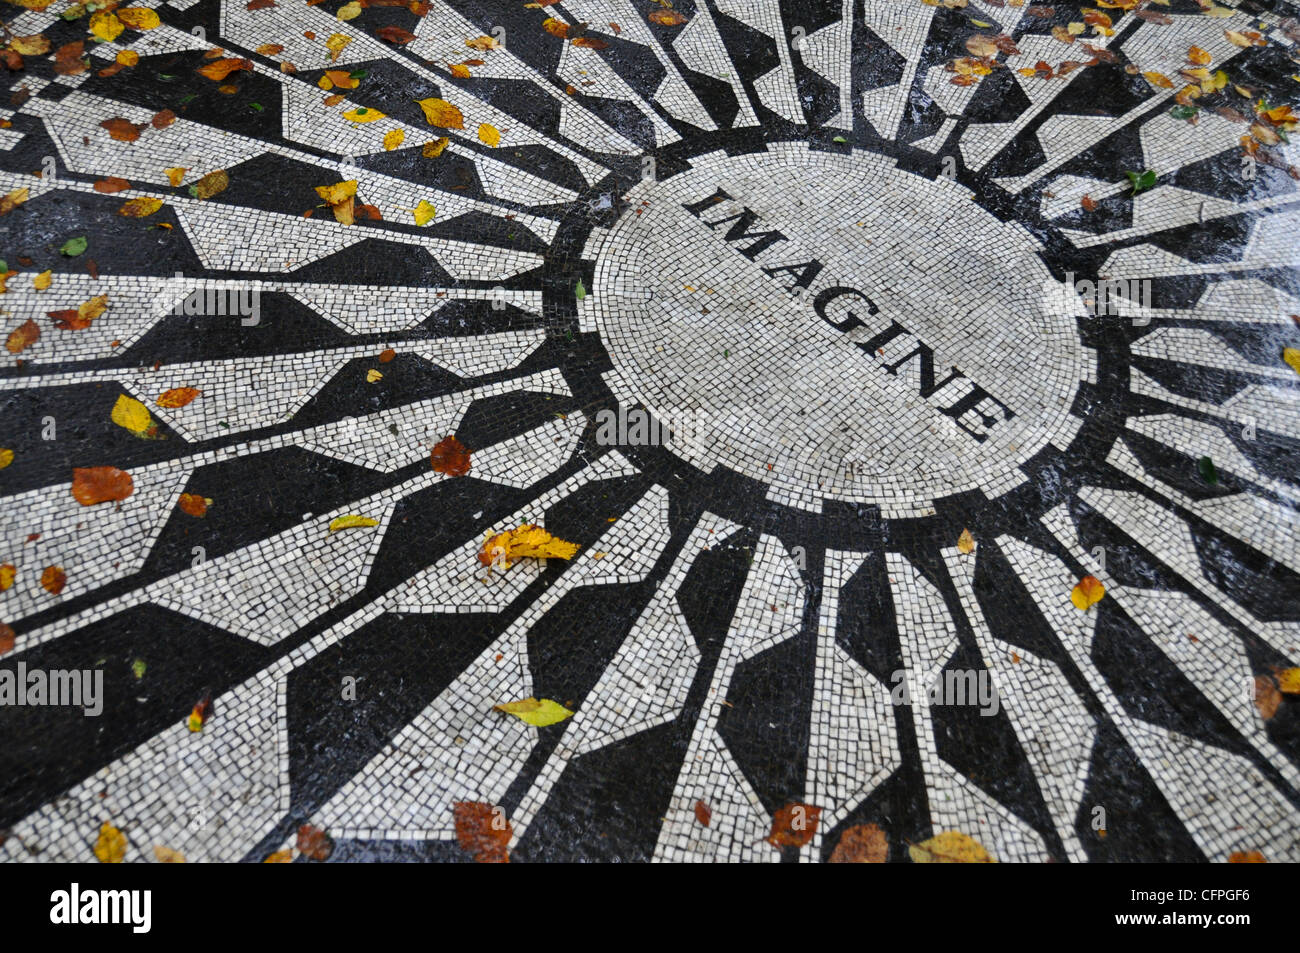 John Lennon Memorial, Central Park, New York, USA - Stock Image